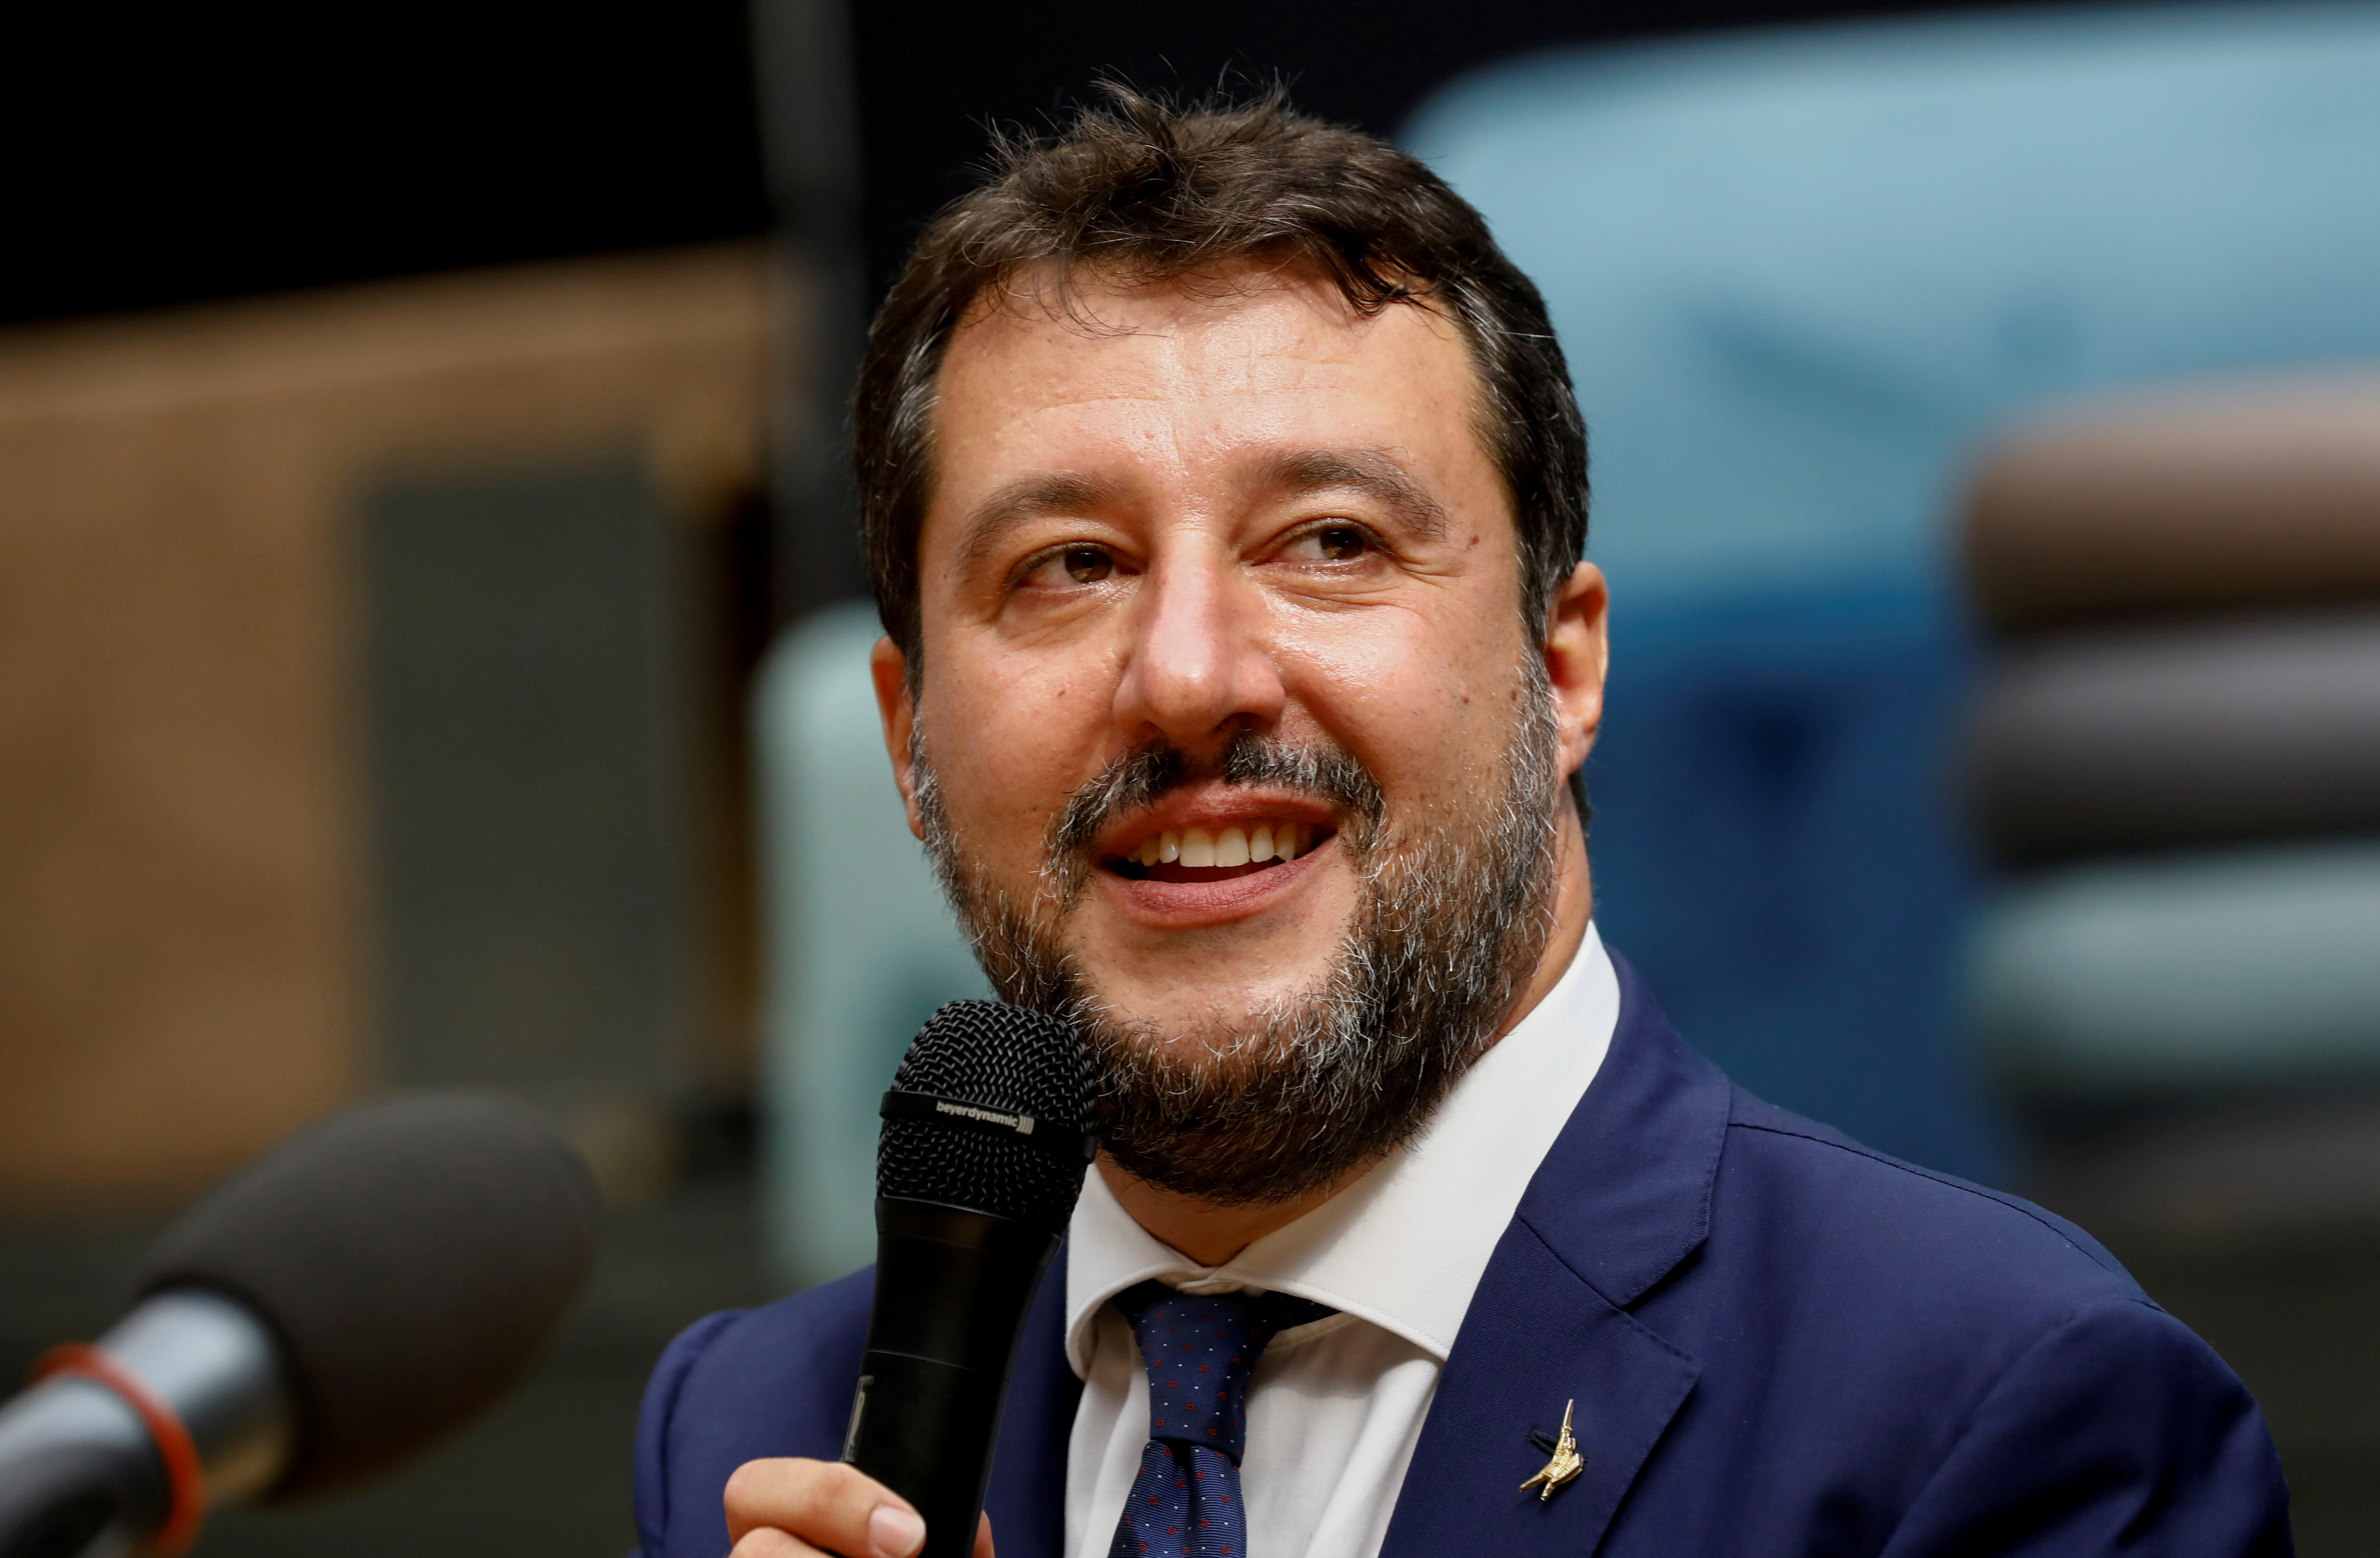 Far-right leader Matteo Salvini speaks during a news conference in Catania, Italy, October 3, 2020. REUTERS/Antonio Parrinello